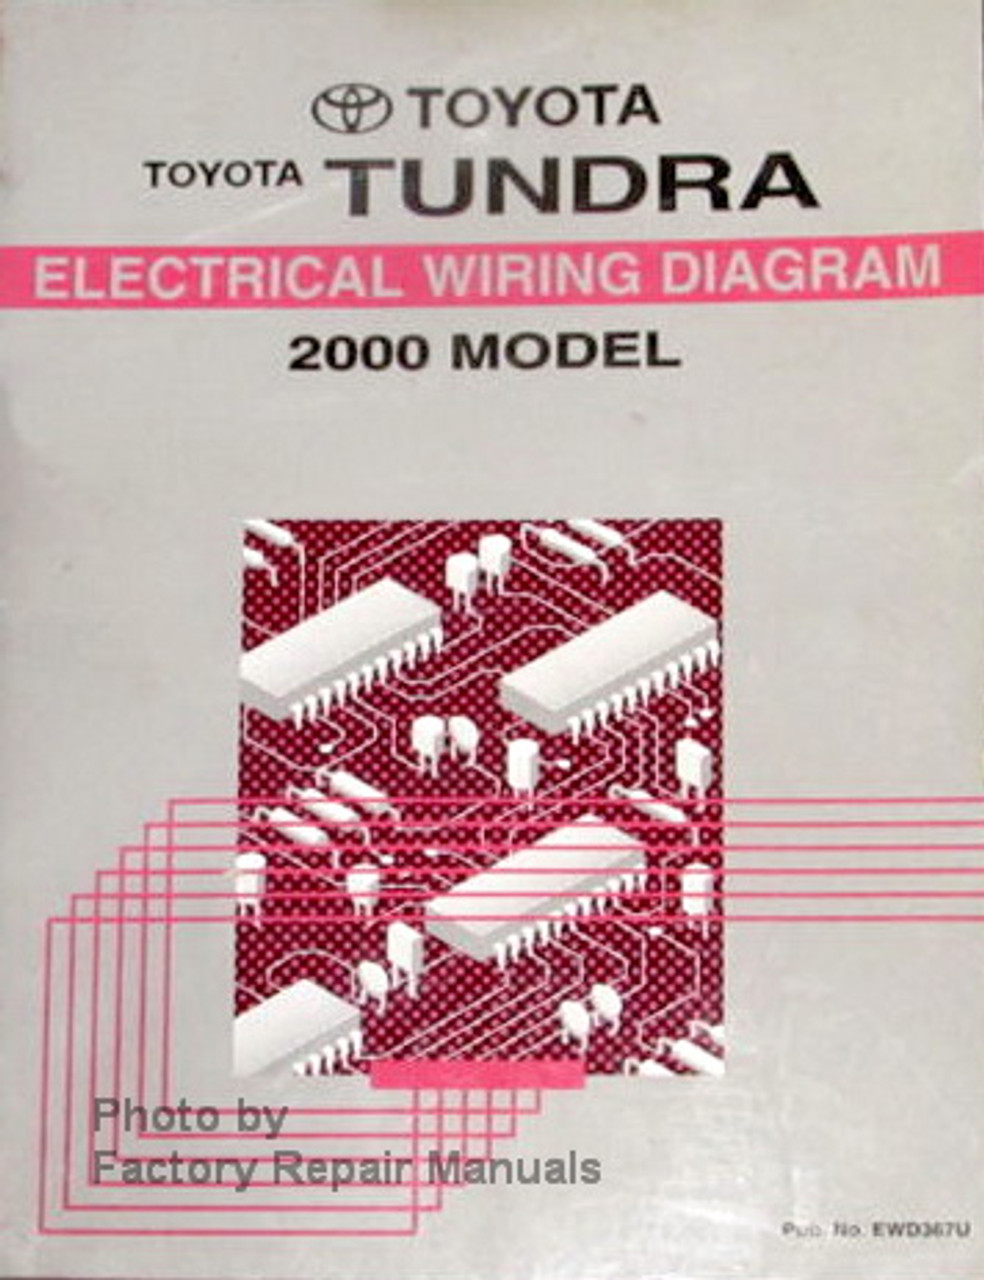 2000 Toyota Tundra Truck Electrical Wiring Diagrams